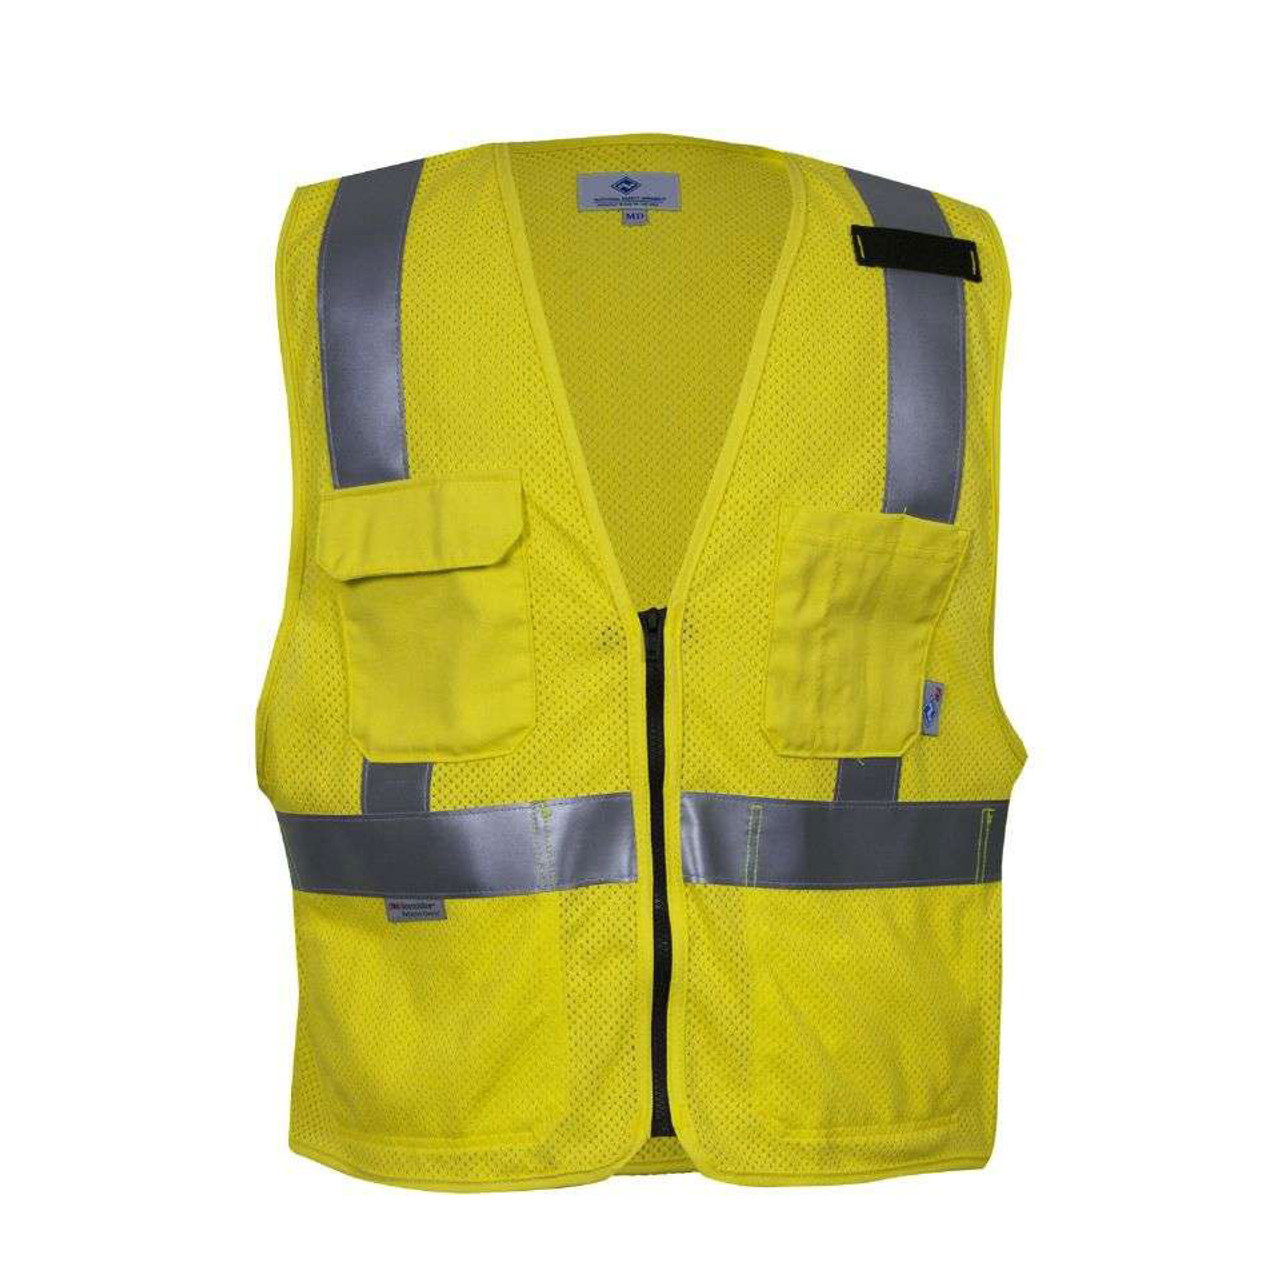 Security & Protection Smart Reflective Safety Vest Pockets Breathable Yellow Orange Mesh Vest Work Wear